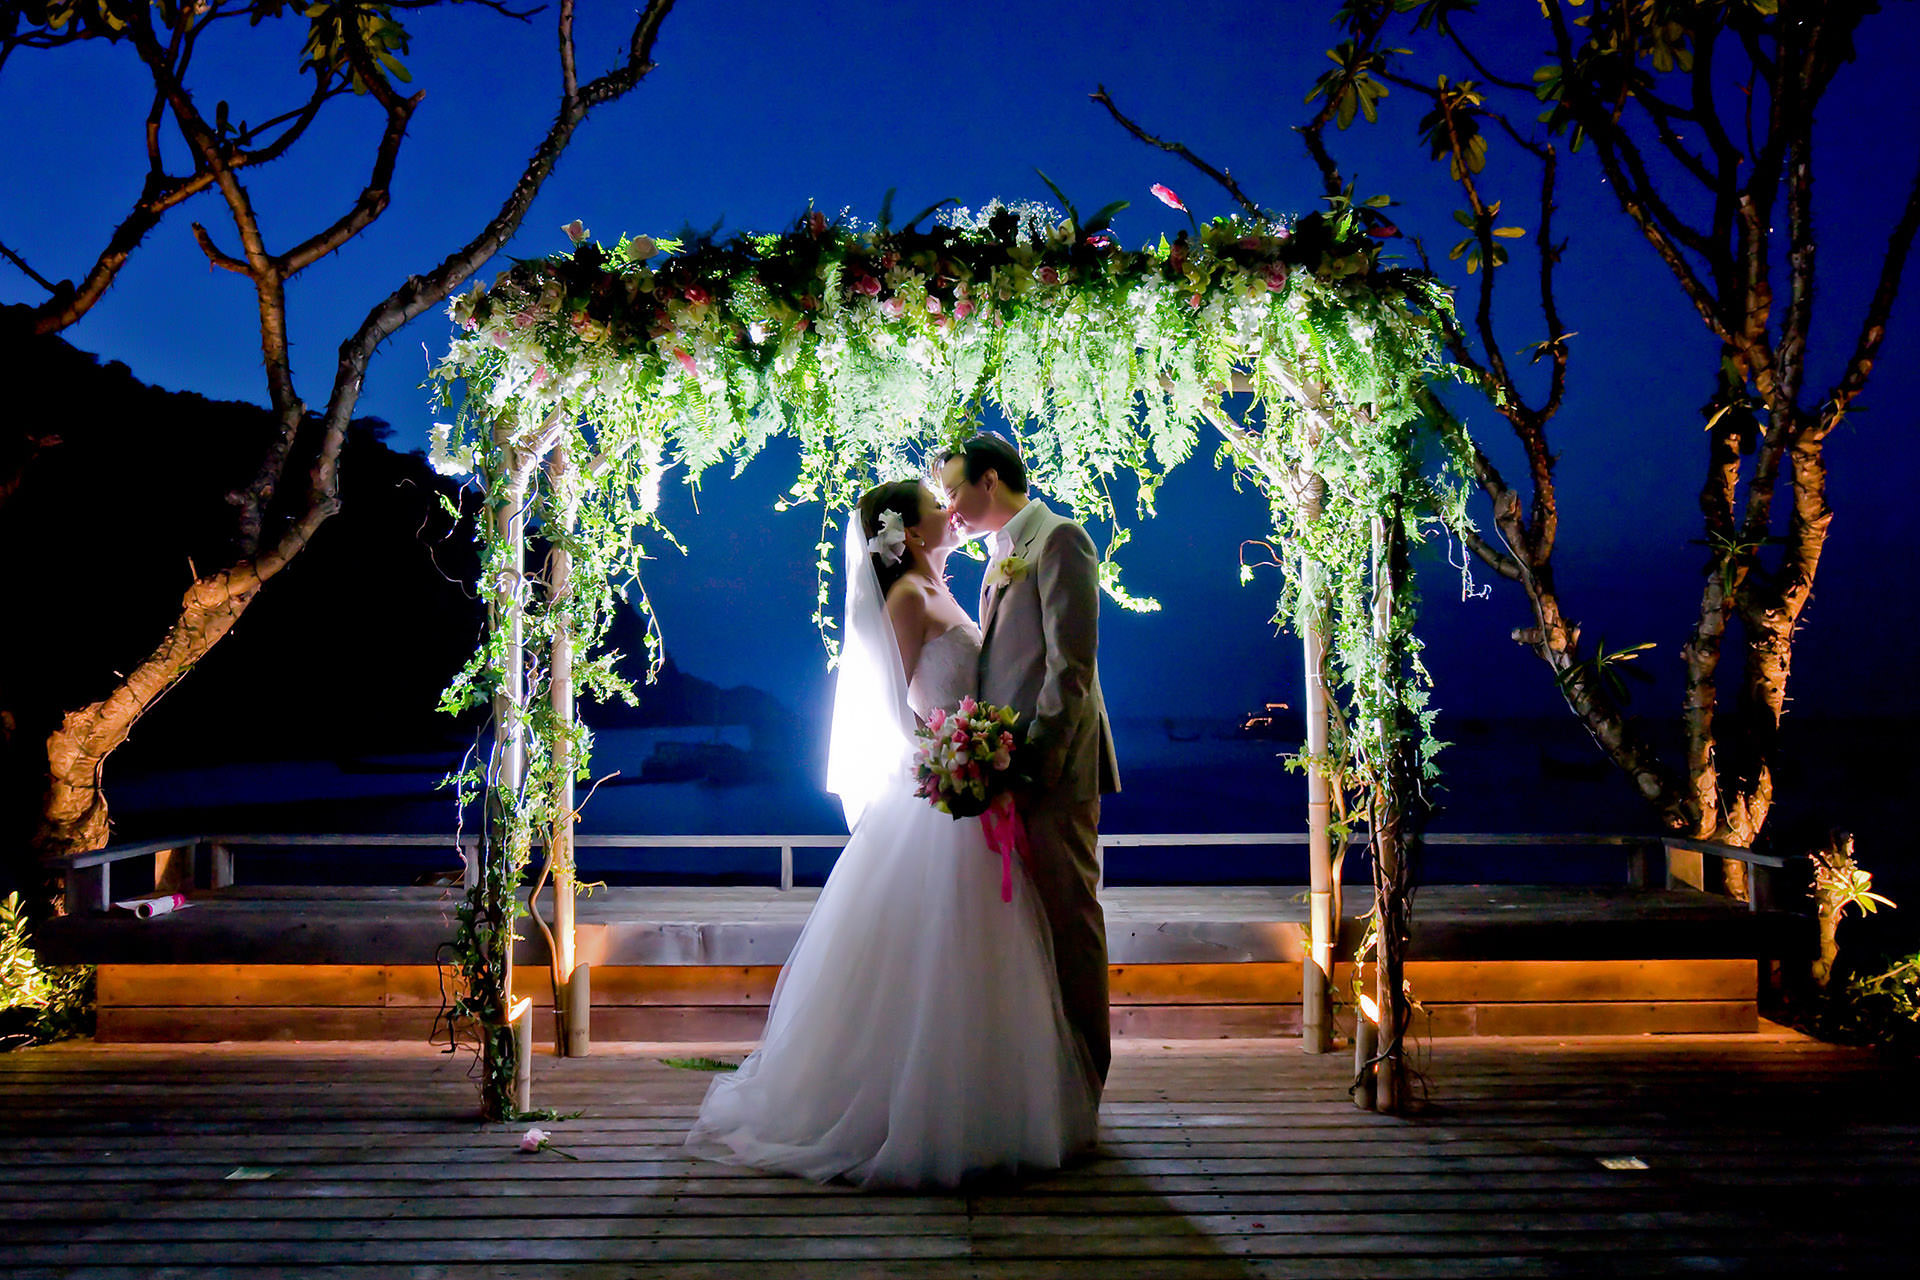 Professional Photography in Tampa, St. Petersburg, Clearwater, Sarasota, Florida - Brian K Crain Photography